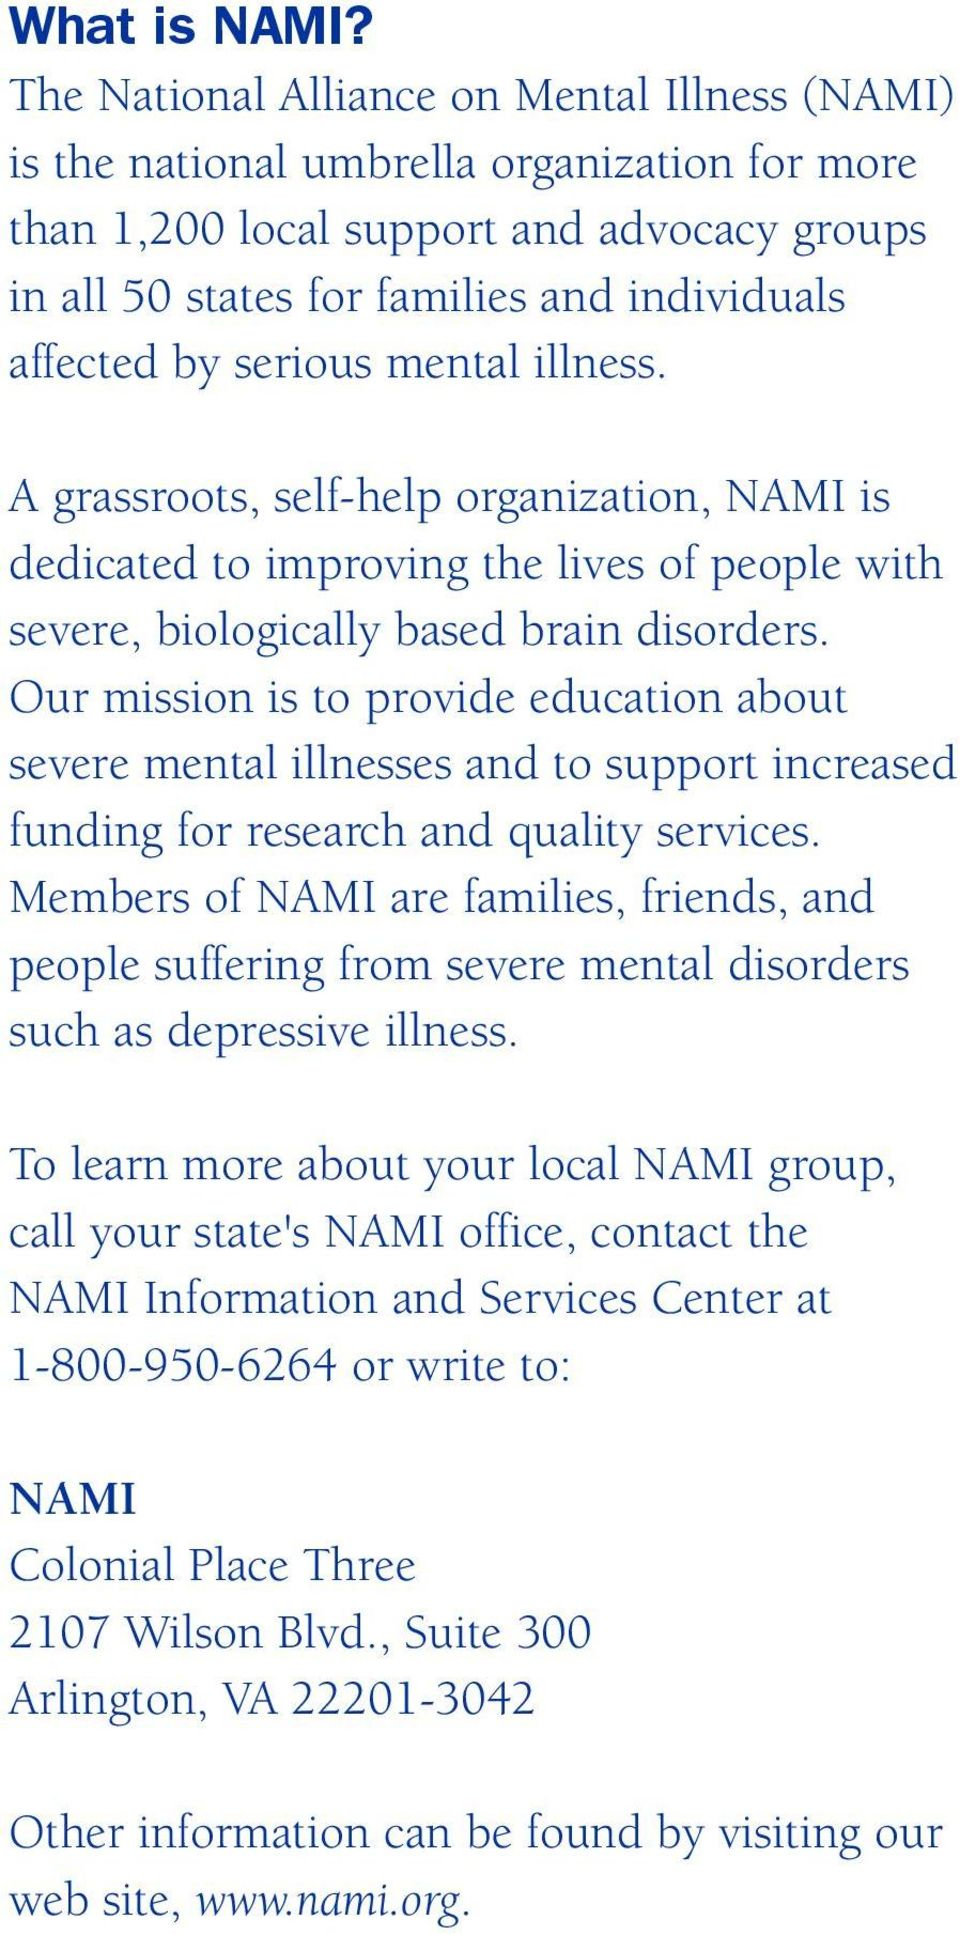 serious mental illness. A grassroots, self-help organization, NAMI is dedicated to improving the lives of people with severe, biologically based brain disorders.